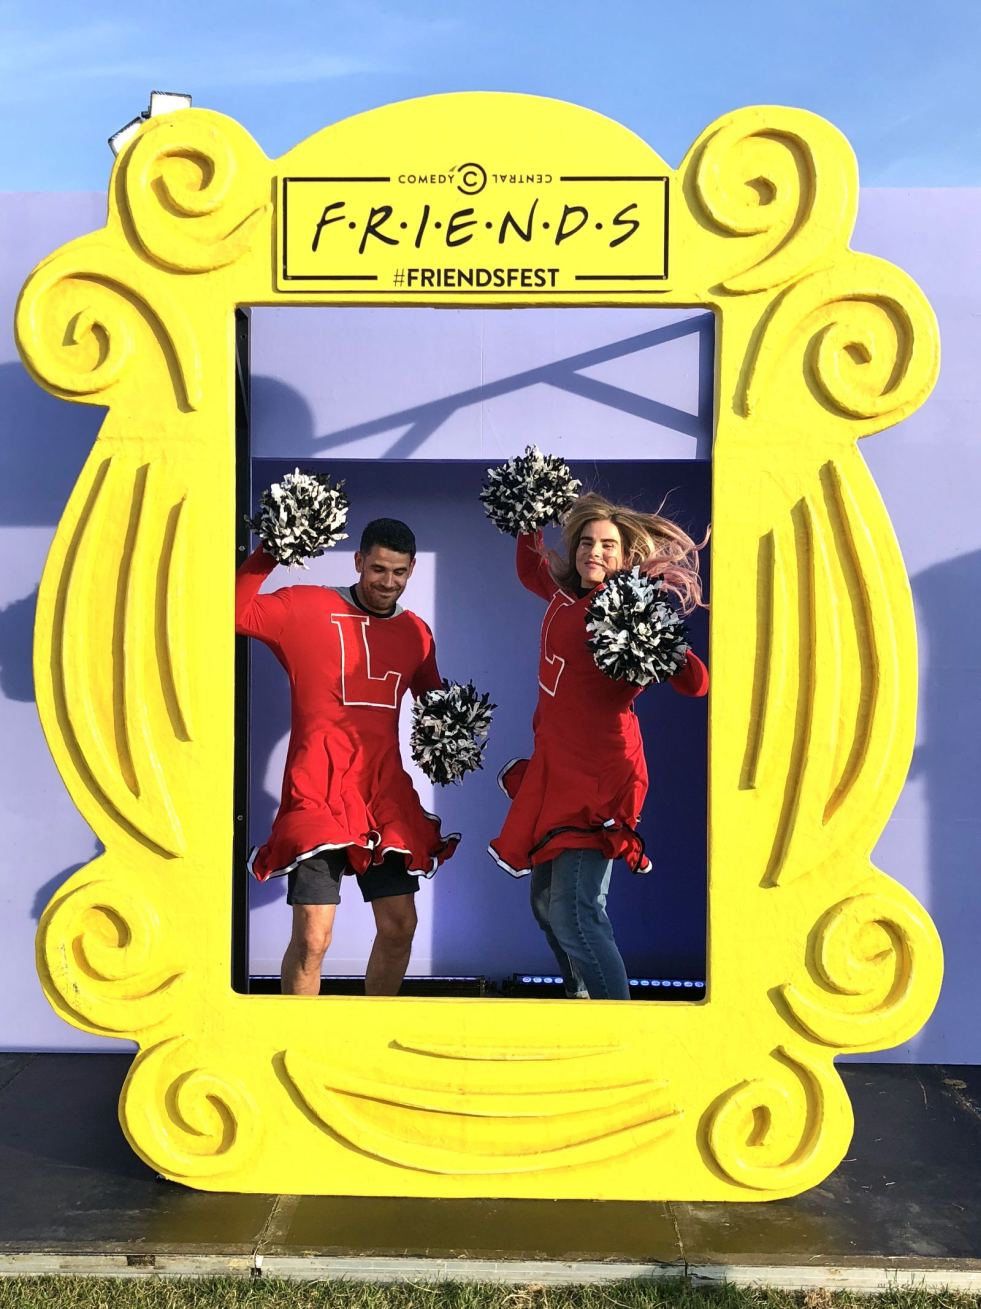 Comedy Central UK's Friends Fest 2018: Pixie Tenenbaum and her brother dressed as cheerleaders in a scene from the TV show friends